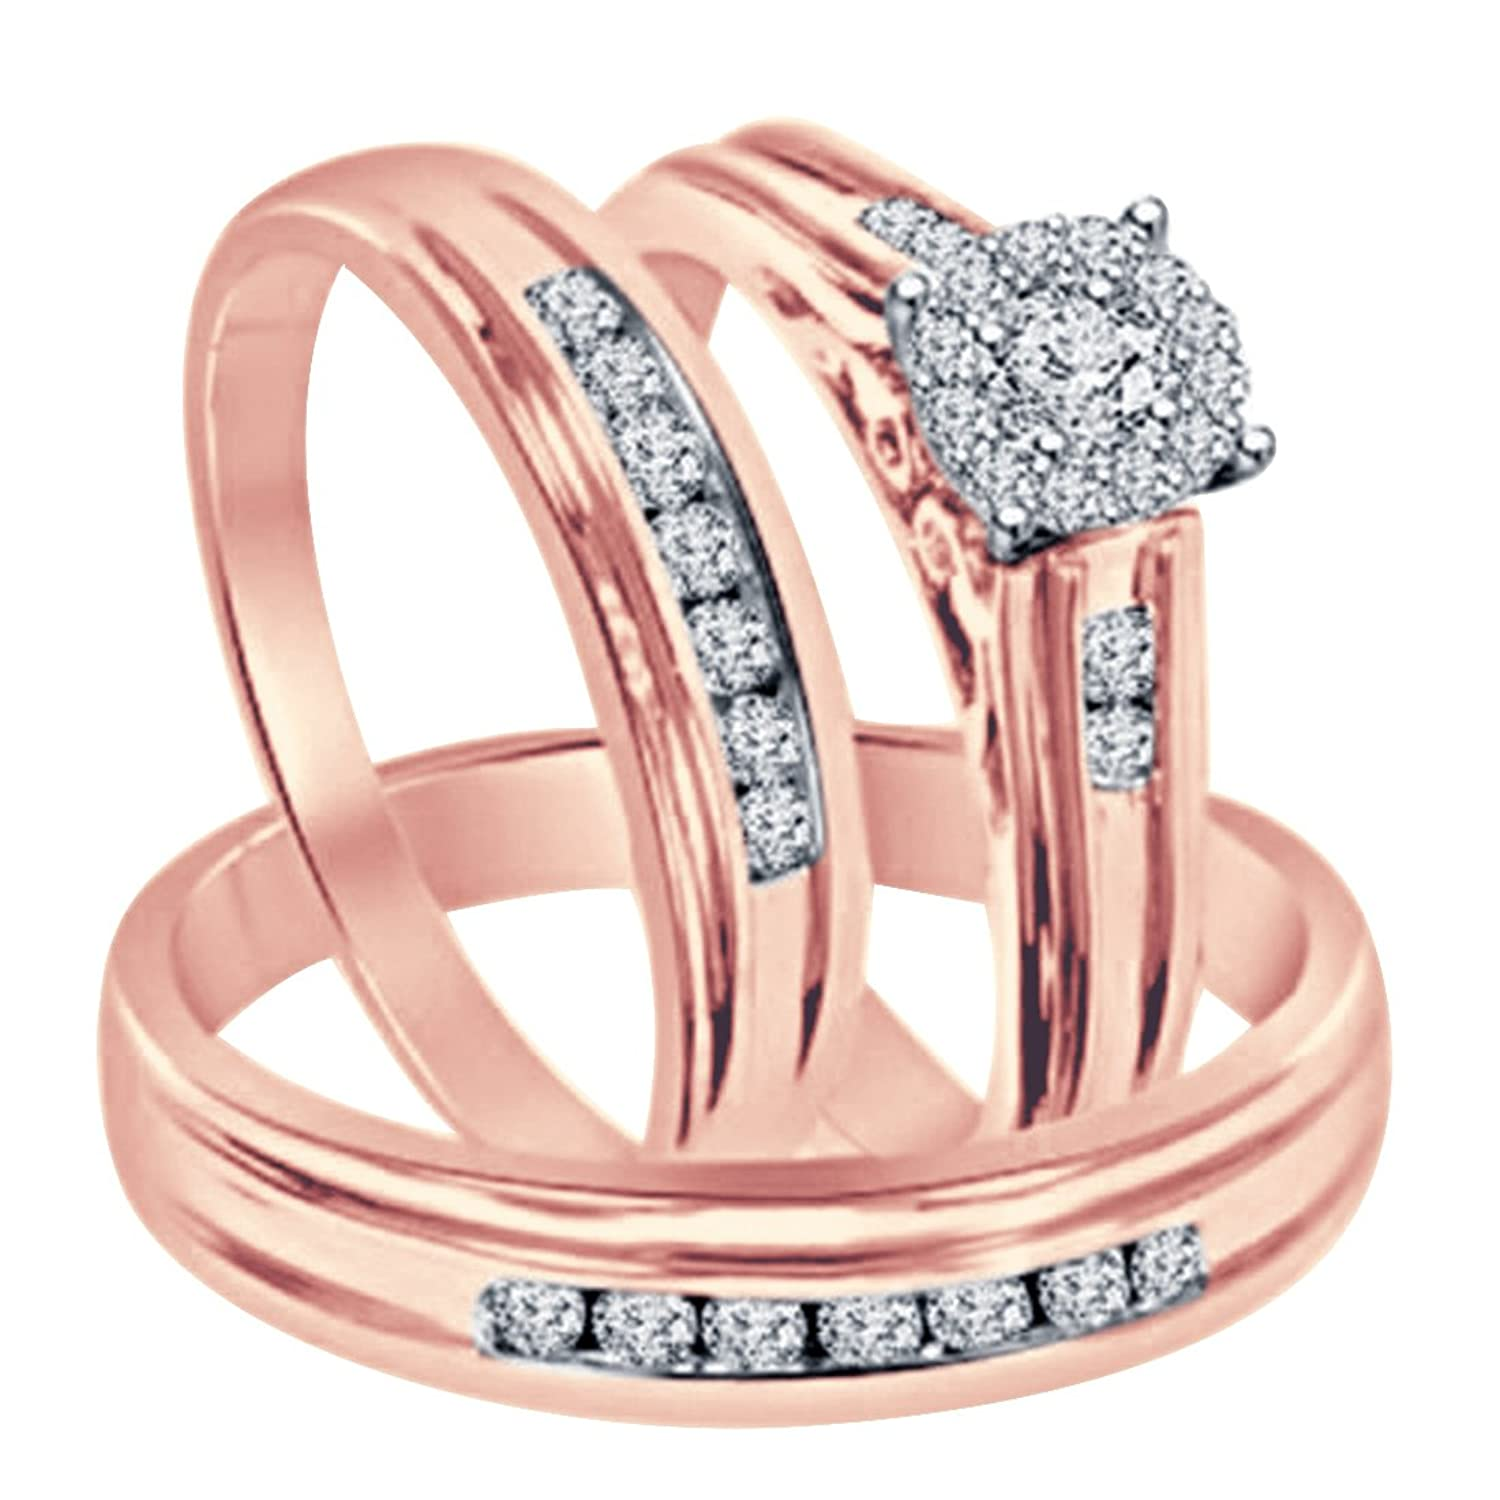 Amazon.com: Smjewels 1.30 Ct Diamond Engagement Ring Wedding Trio ...